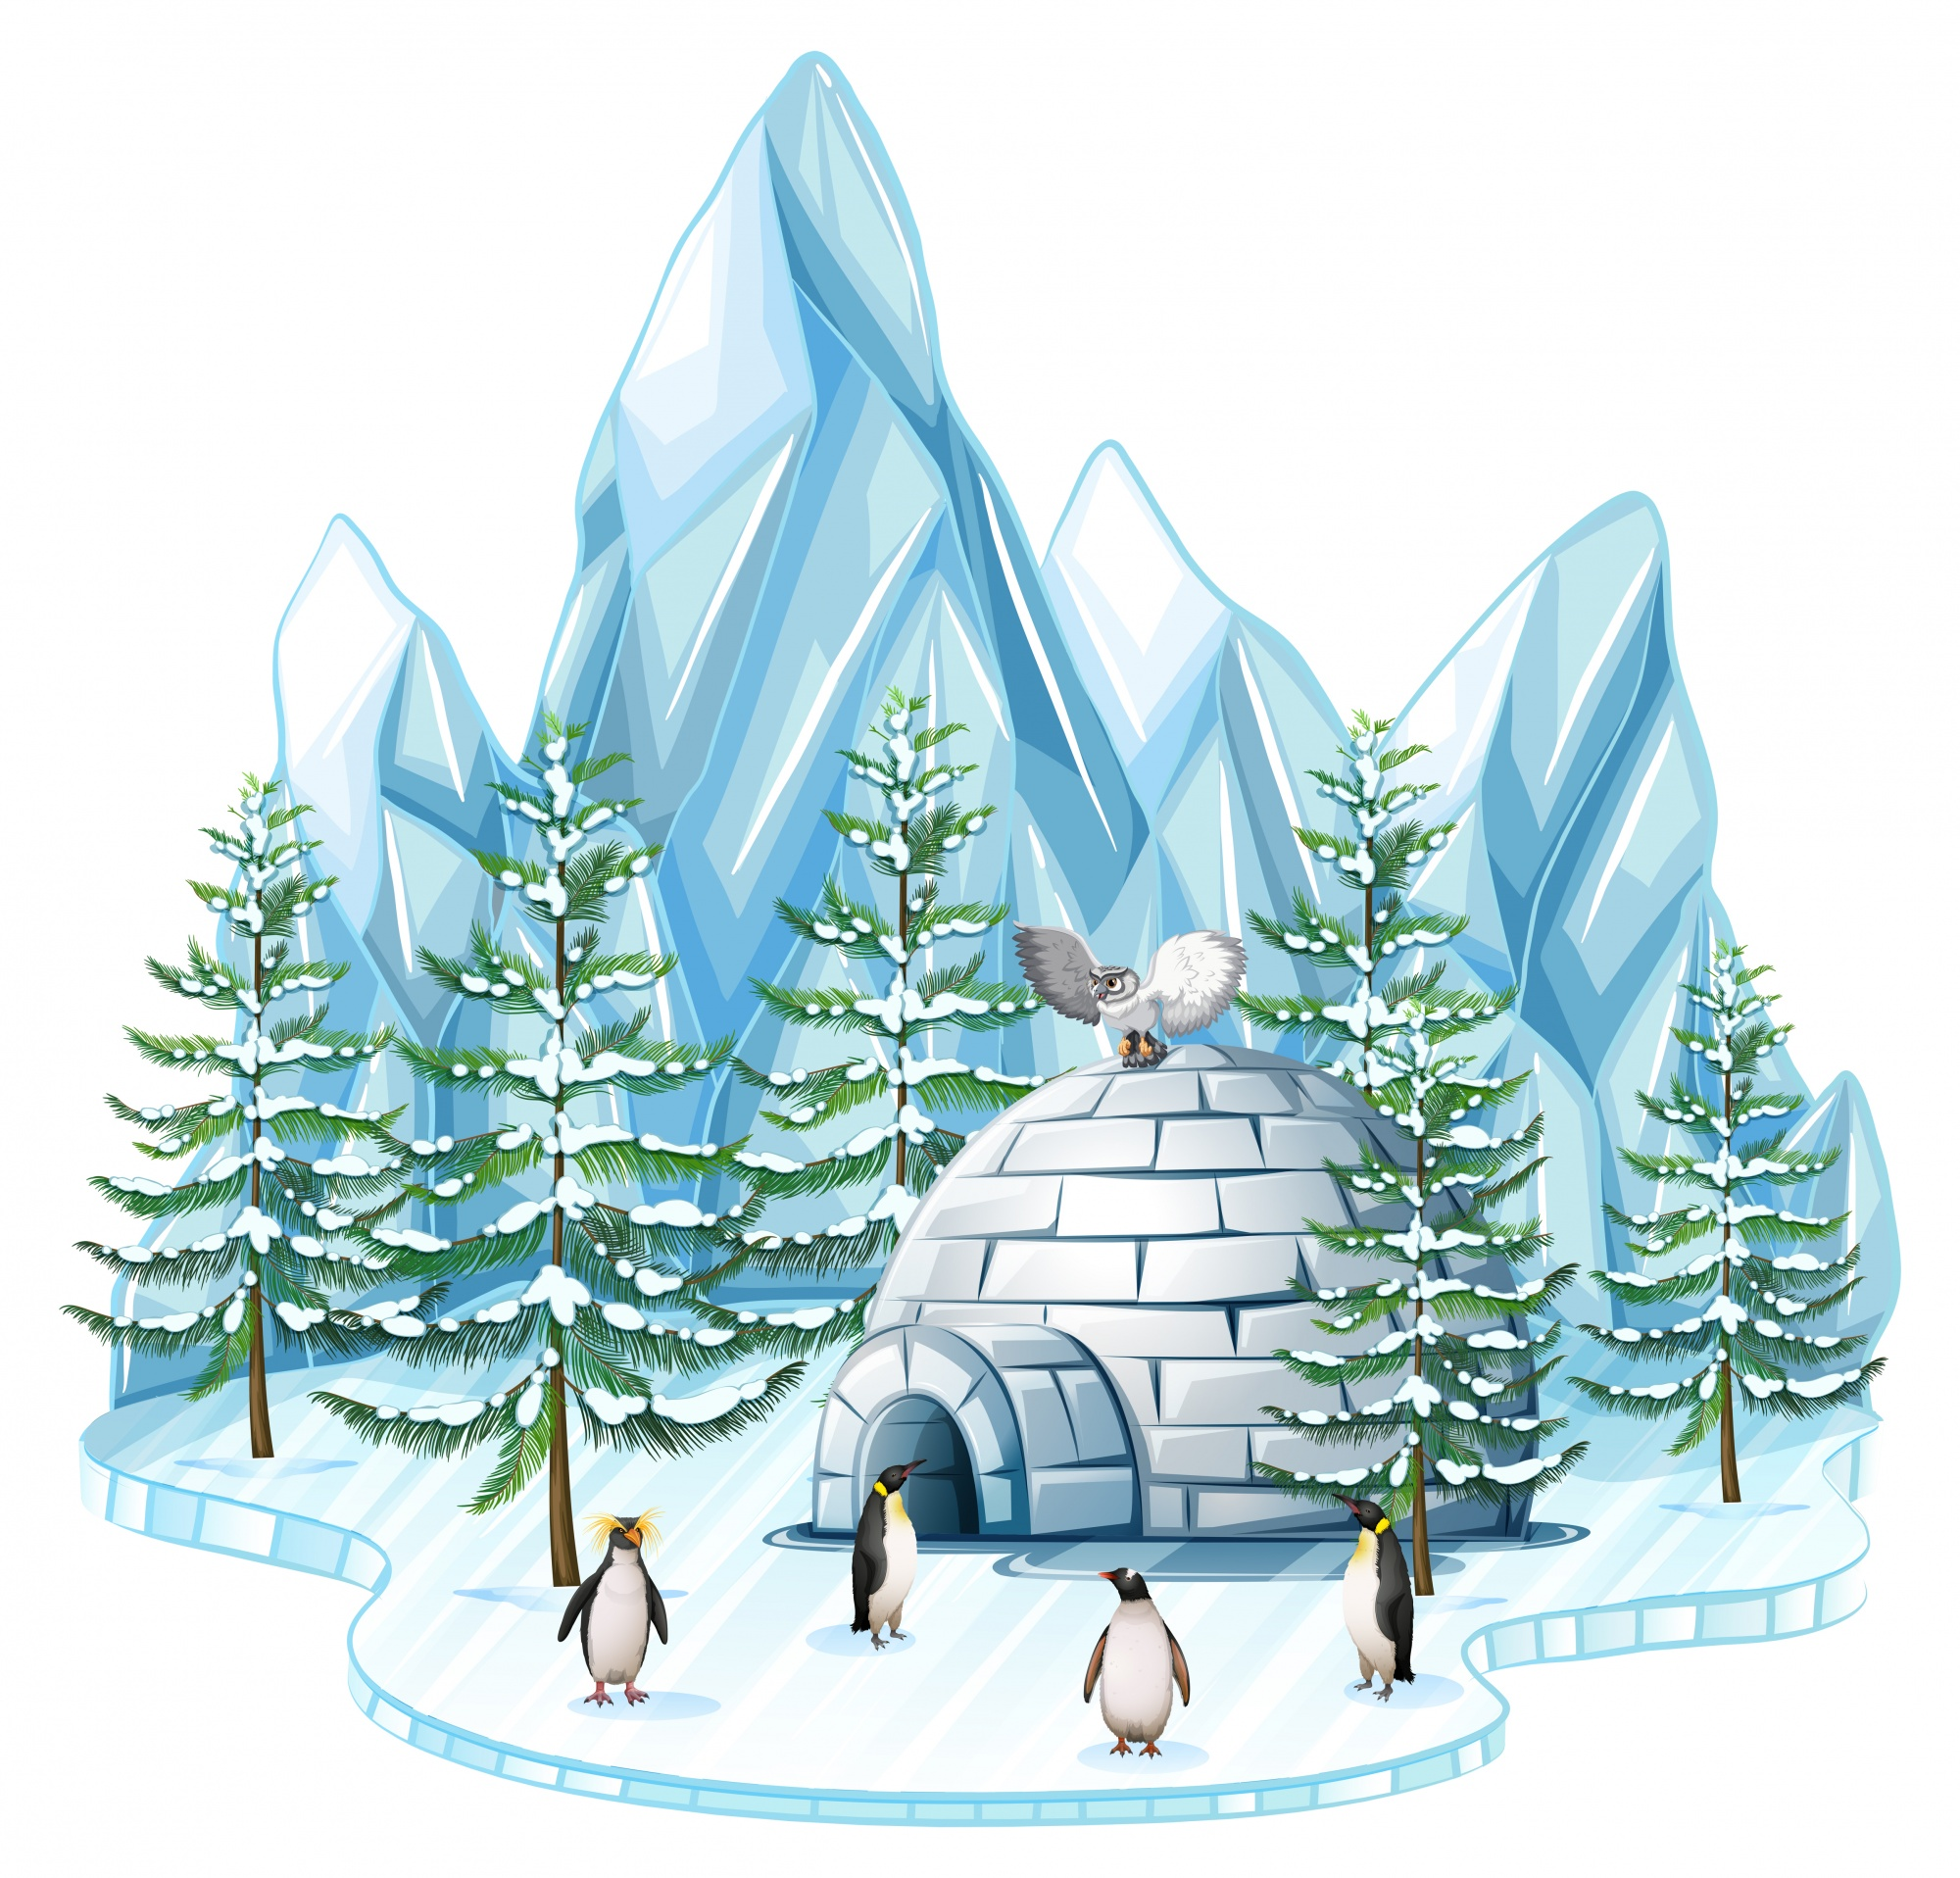 Penguins and owl by the igloo